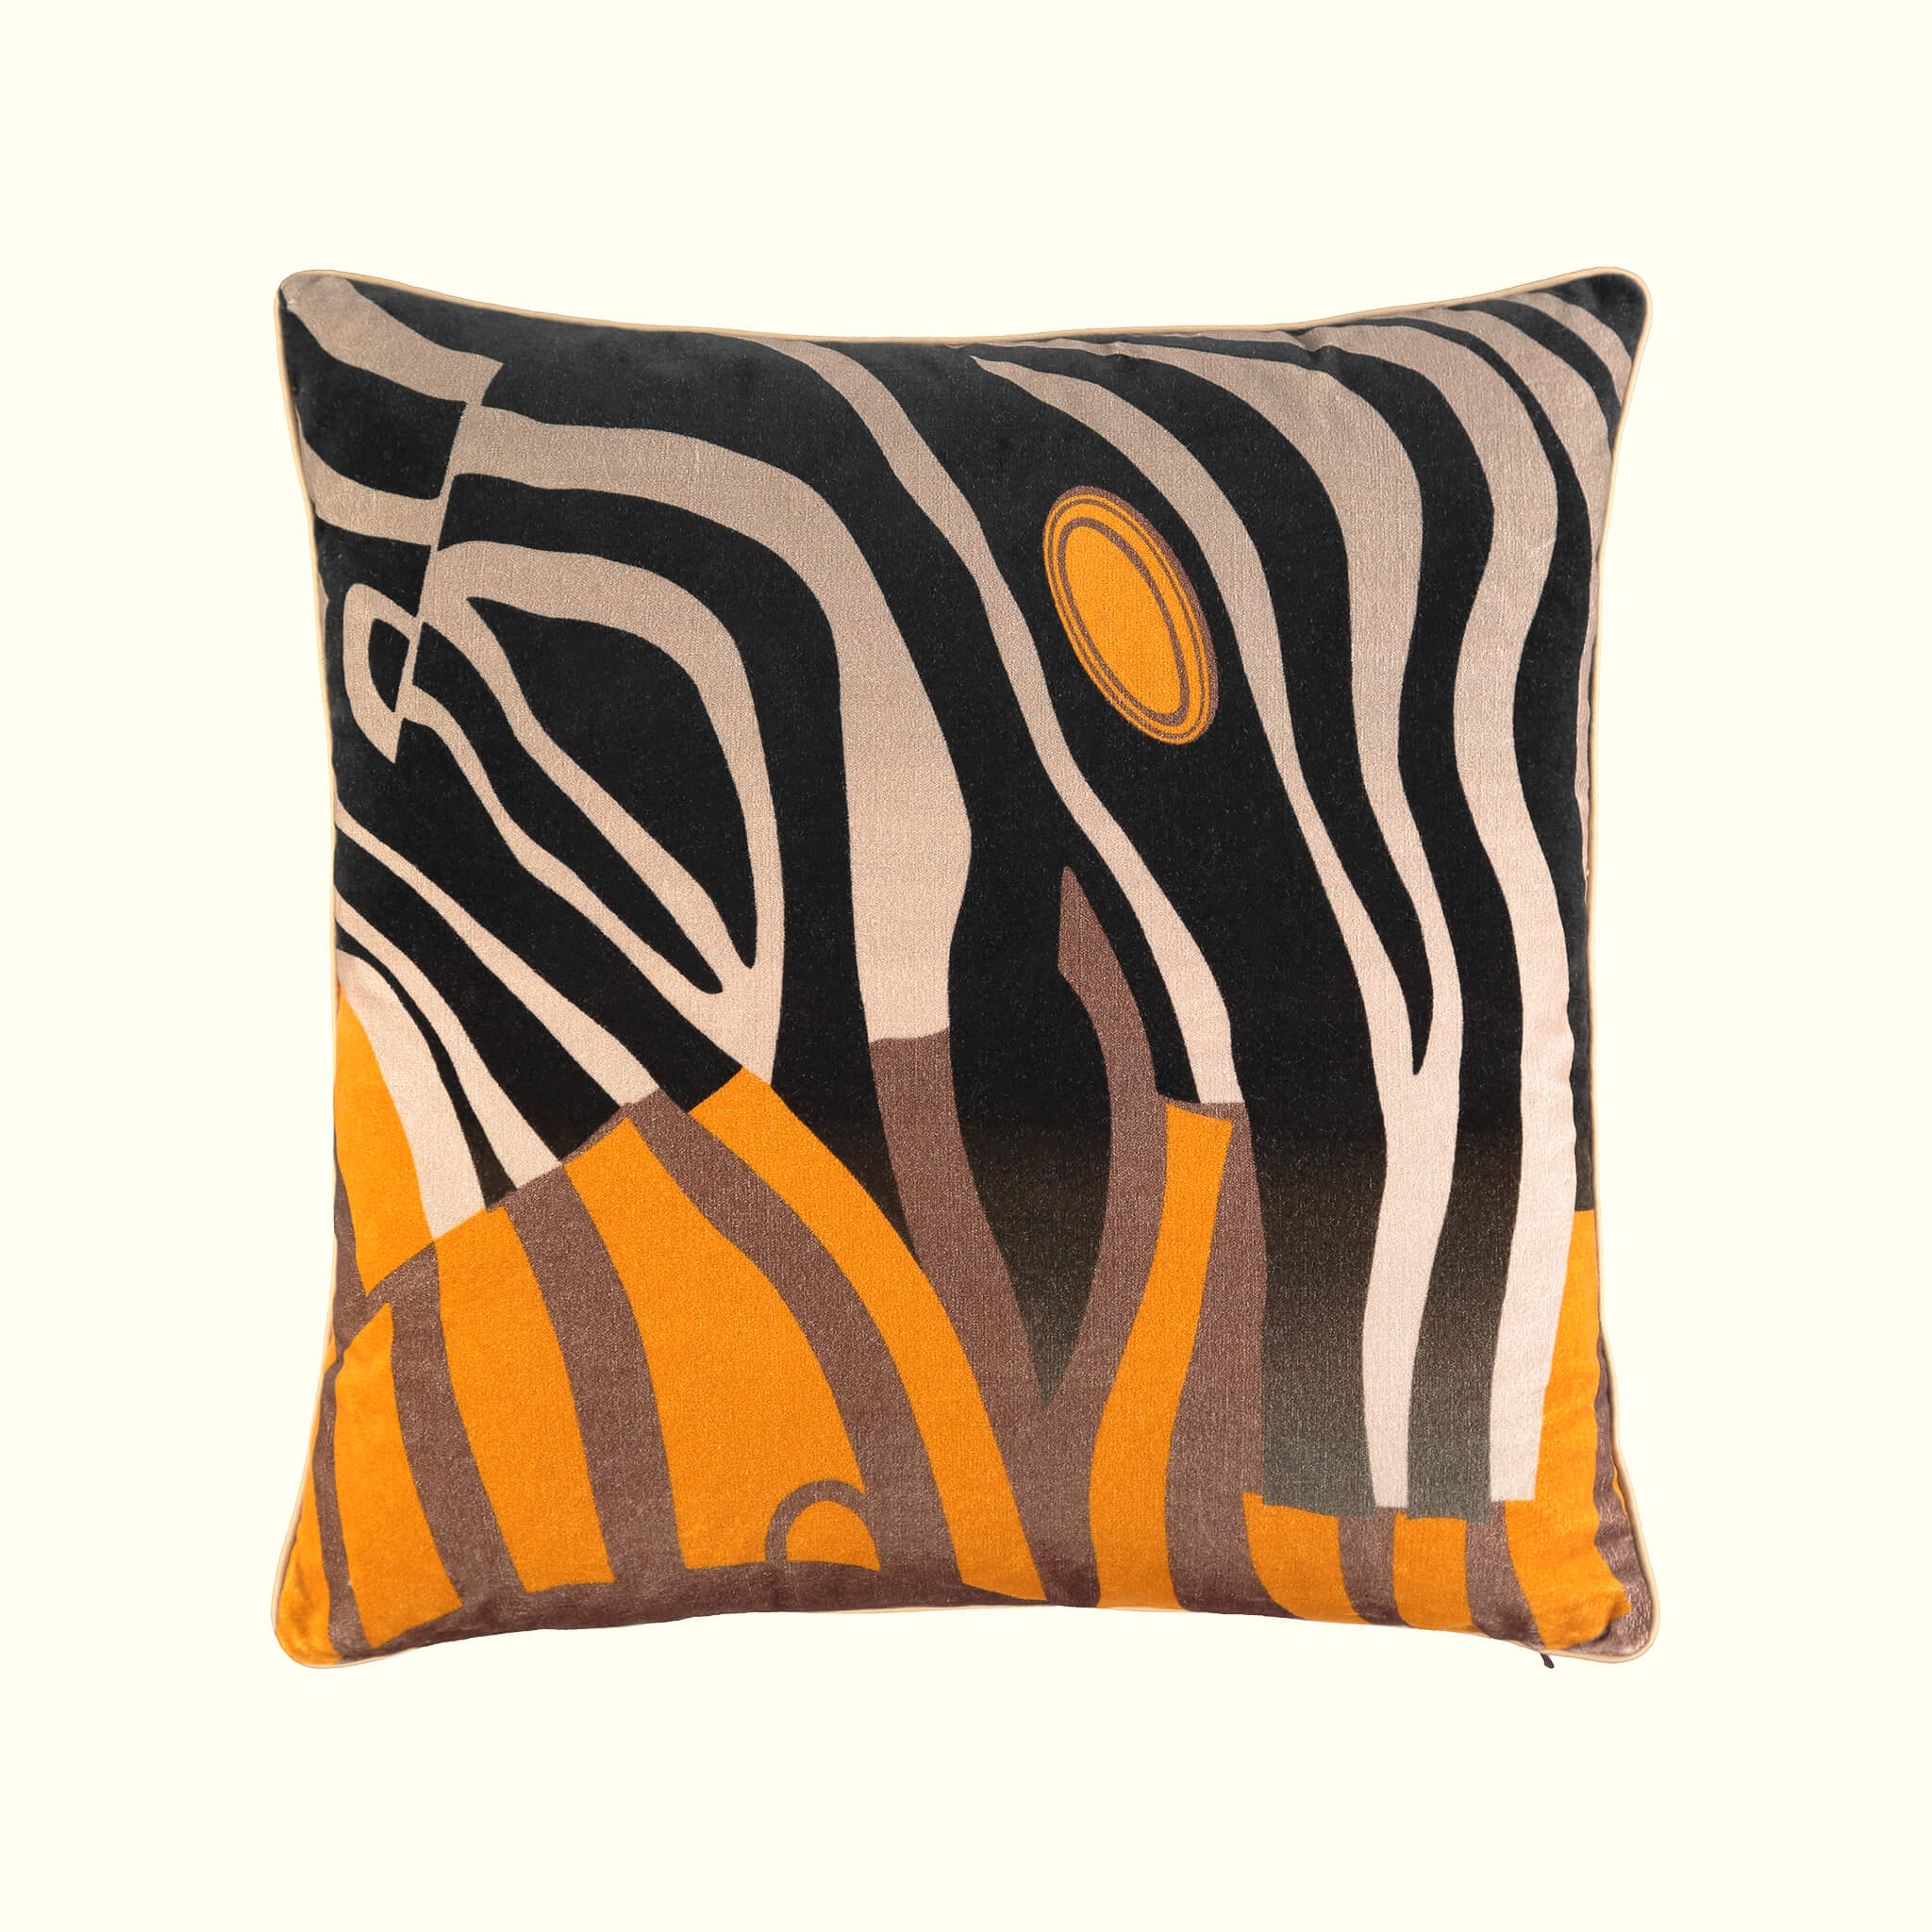 A luxury British cotton velvet cushion by GVE in black and amber Dune print design.